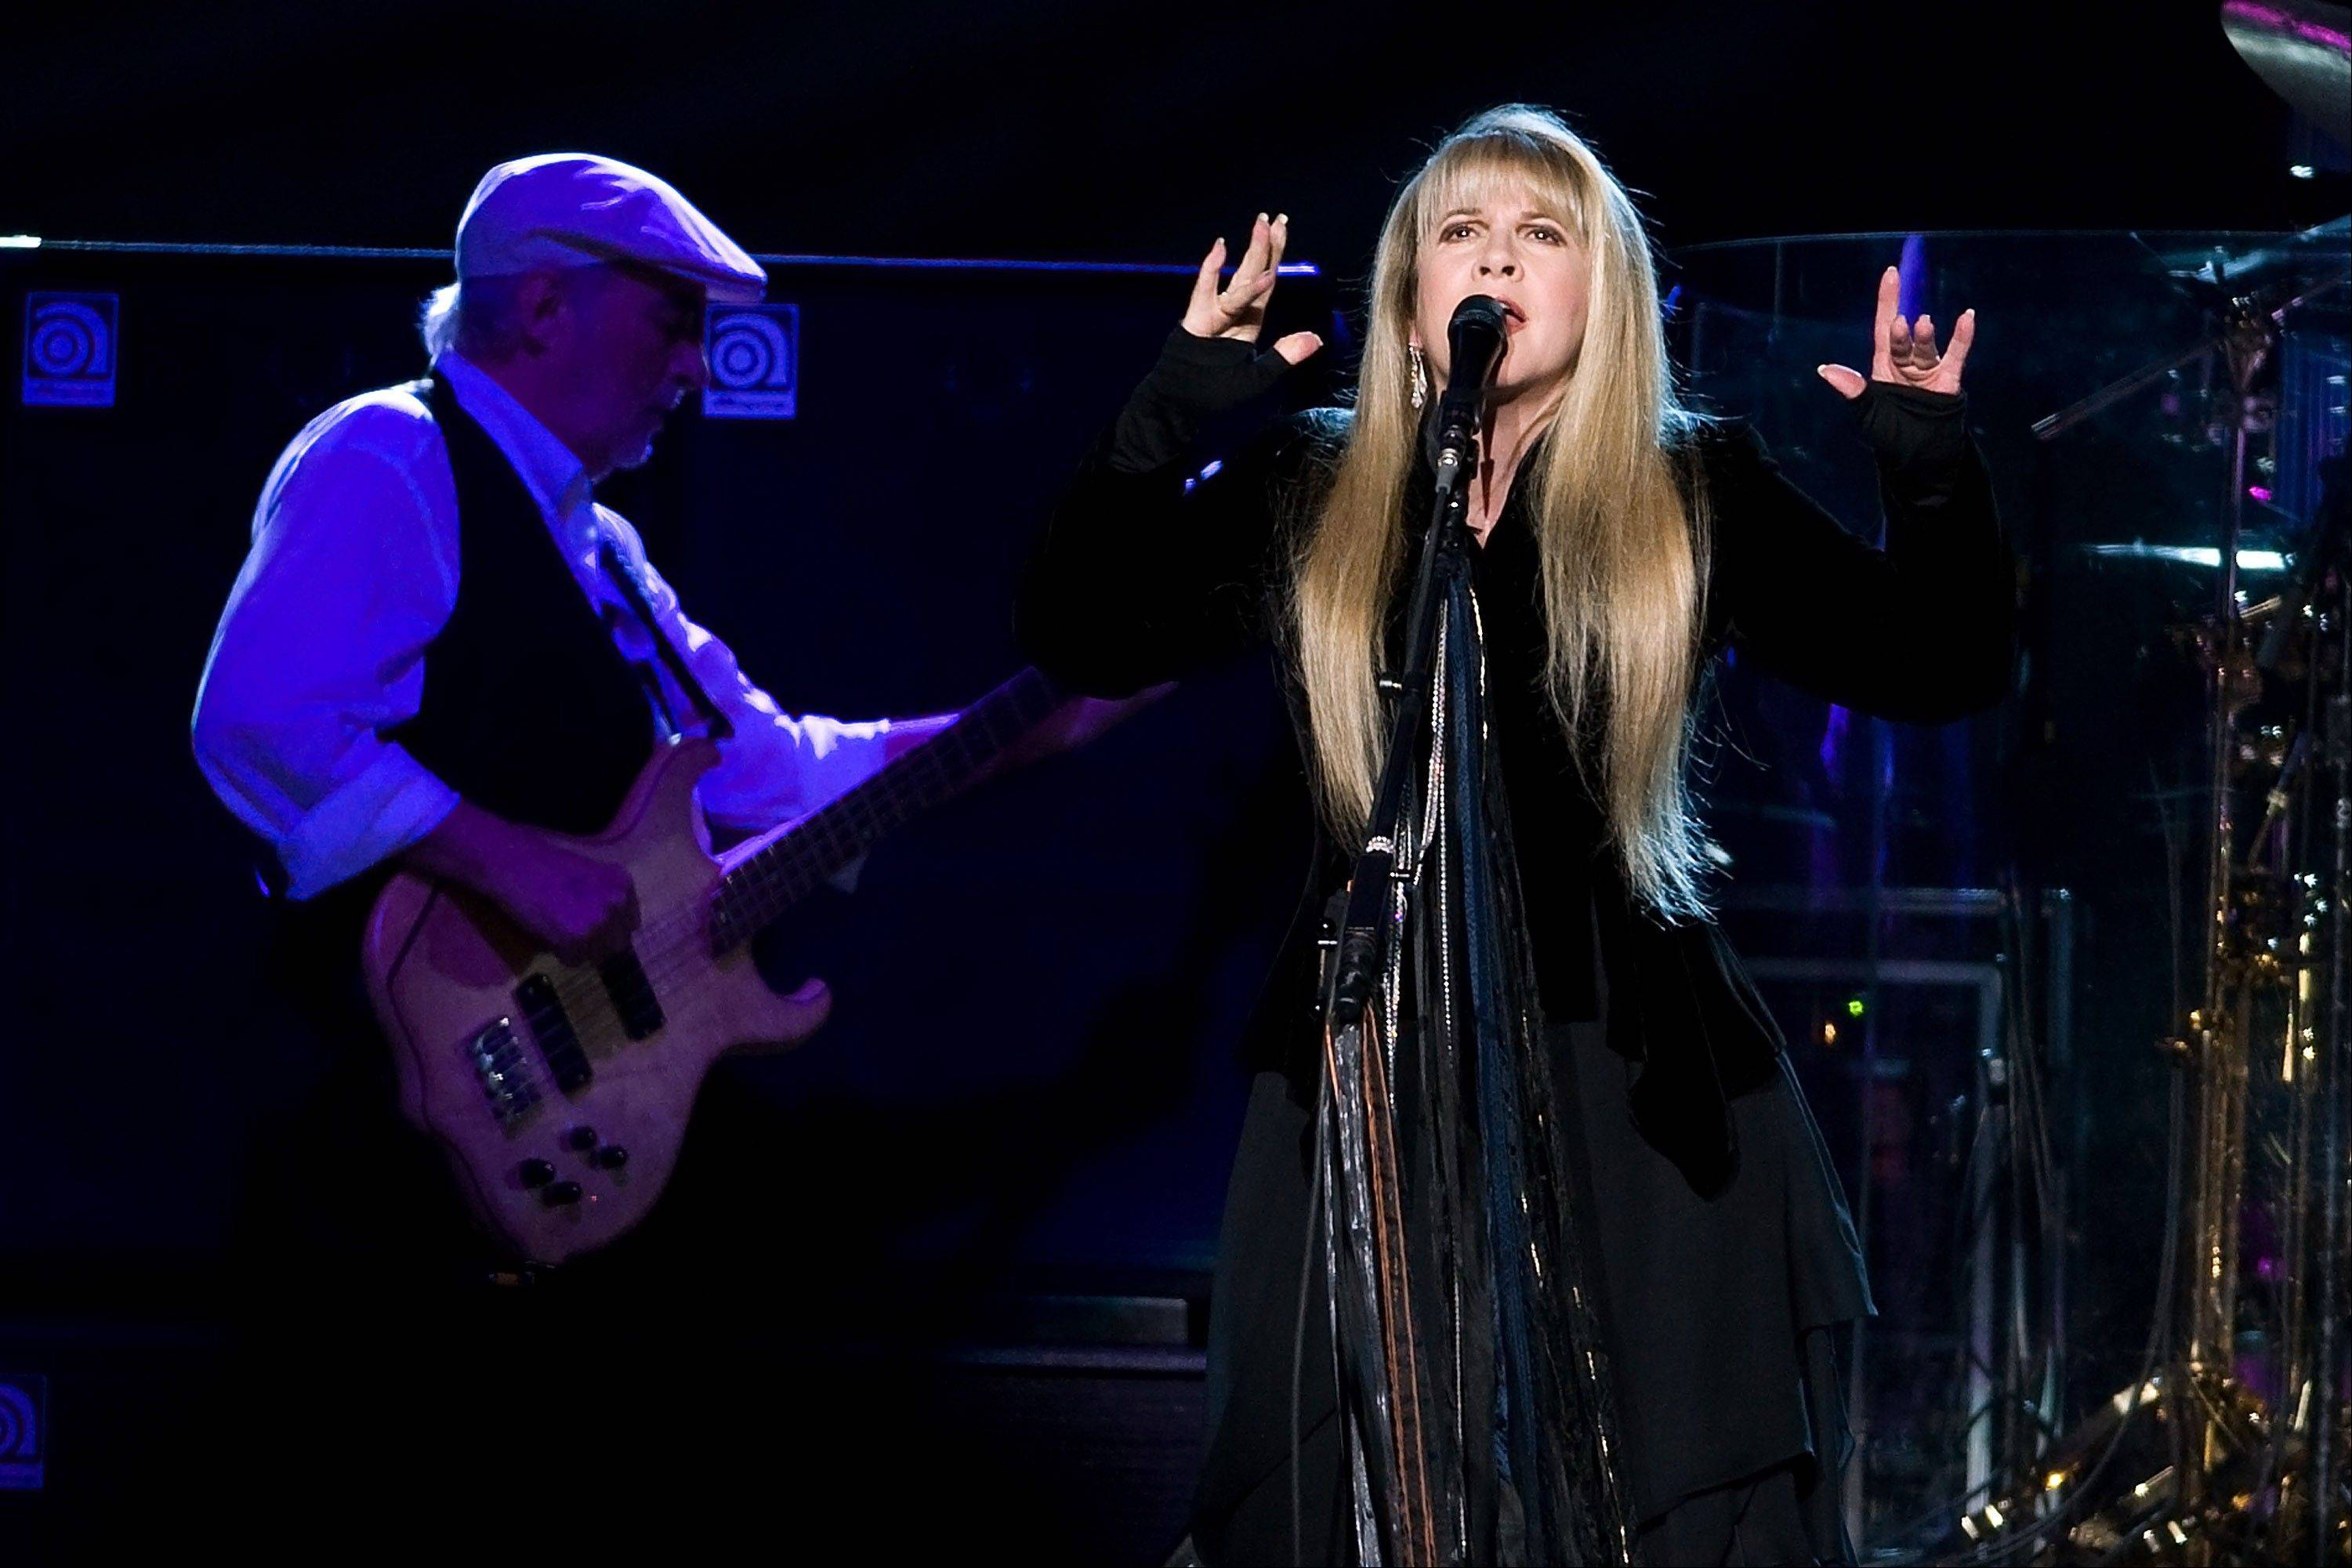 Fleetwood Mac, including John McVie, left, and Stevie Nicks, is heading back on the road with a 34-city U.S. tour kicking off April 3 in Columbus, Ohio.